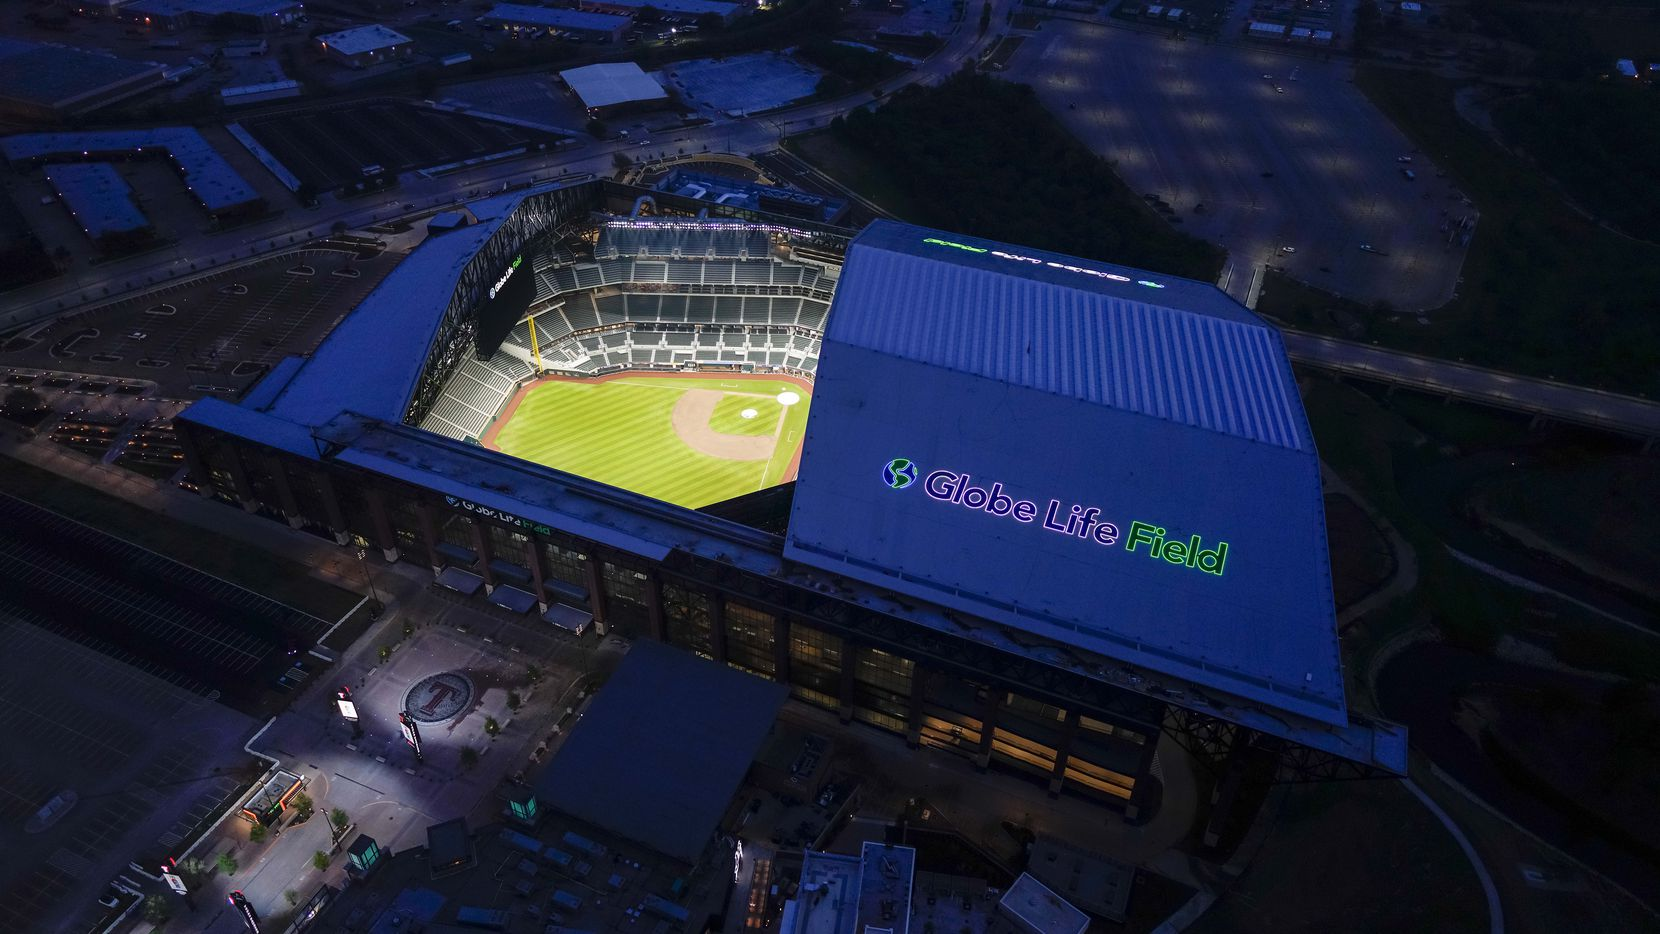 An aerial view of Globe Life Field in Arlington, Texas emphasizes the retractable roof, a key difference compared to the former home of the Texas Rangers.